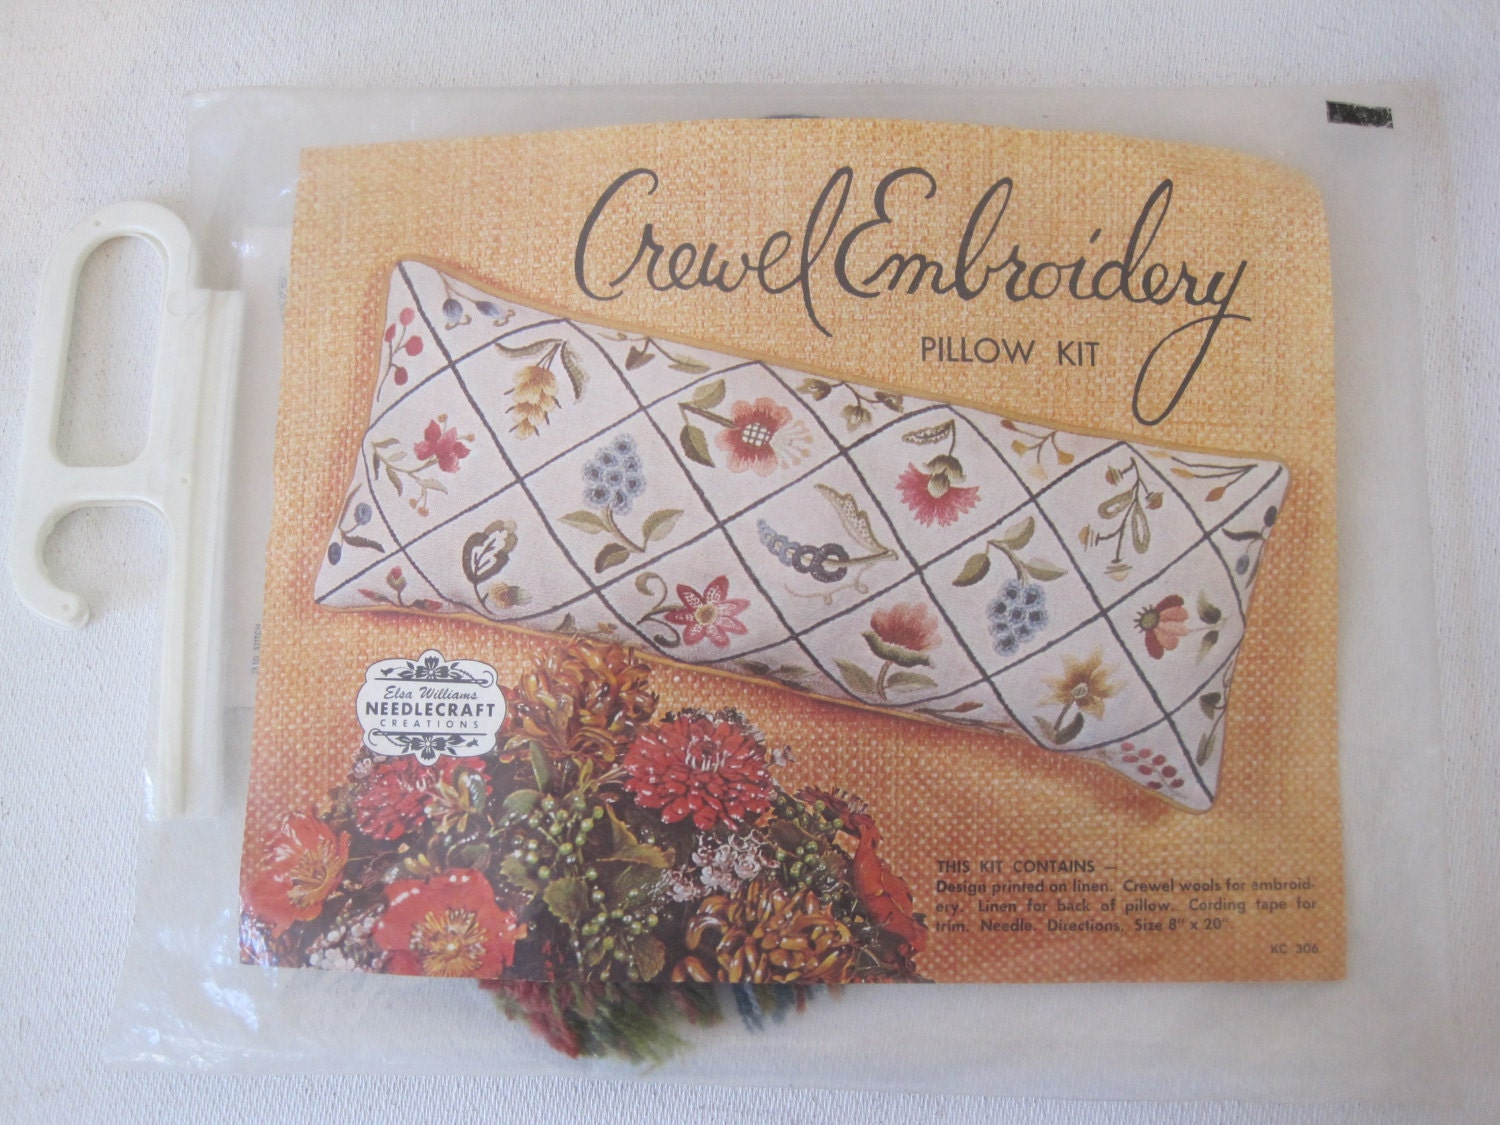 Crewel Embroidery Pillow Kit By Elsa Williams By CuckoosFabrik